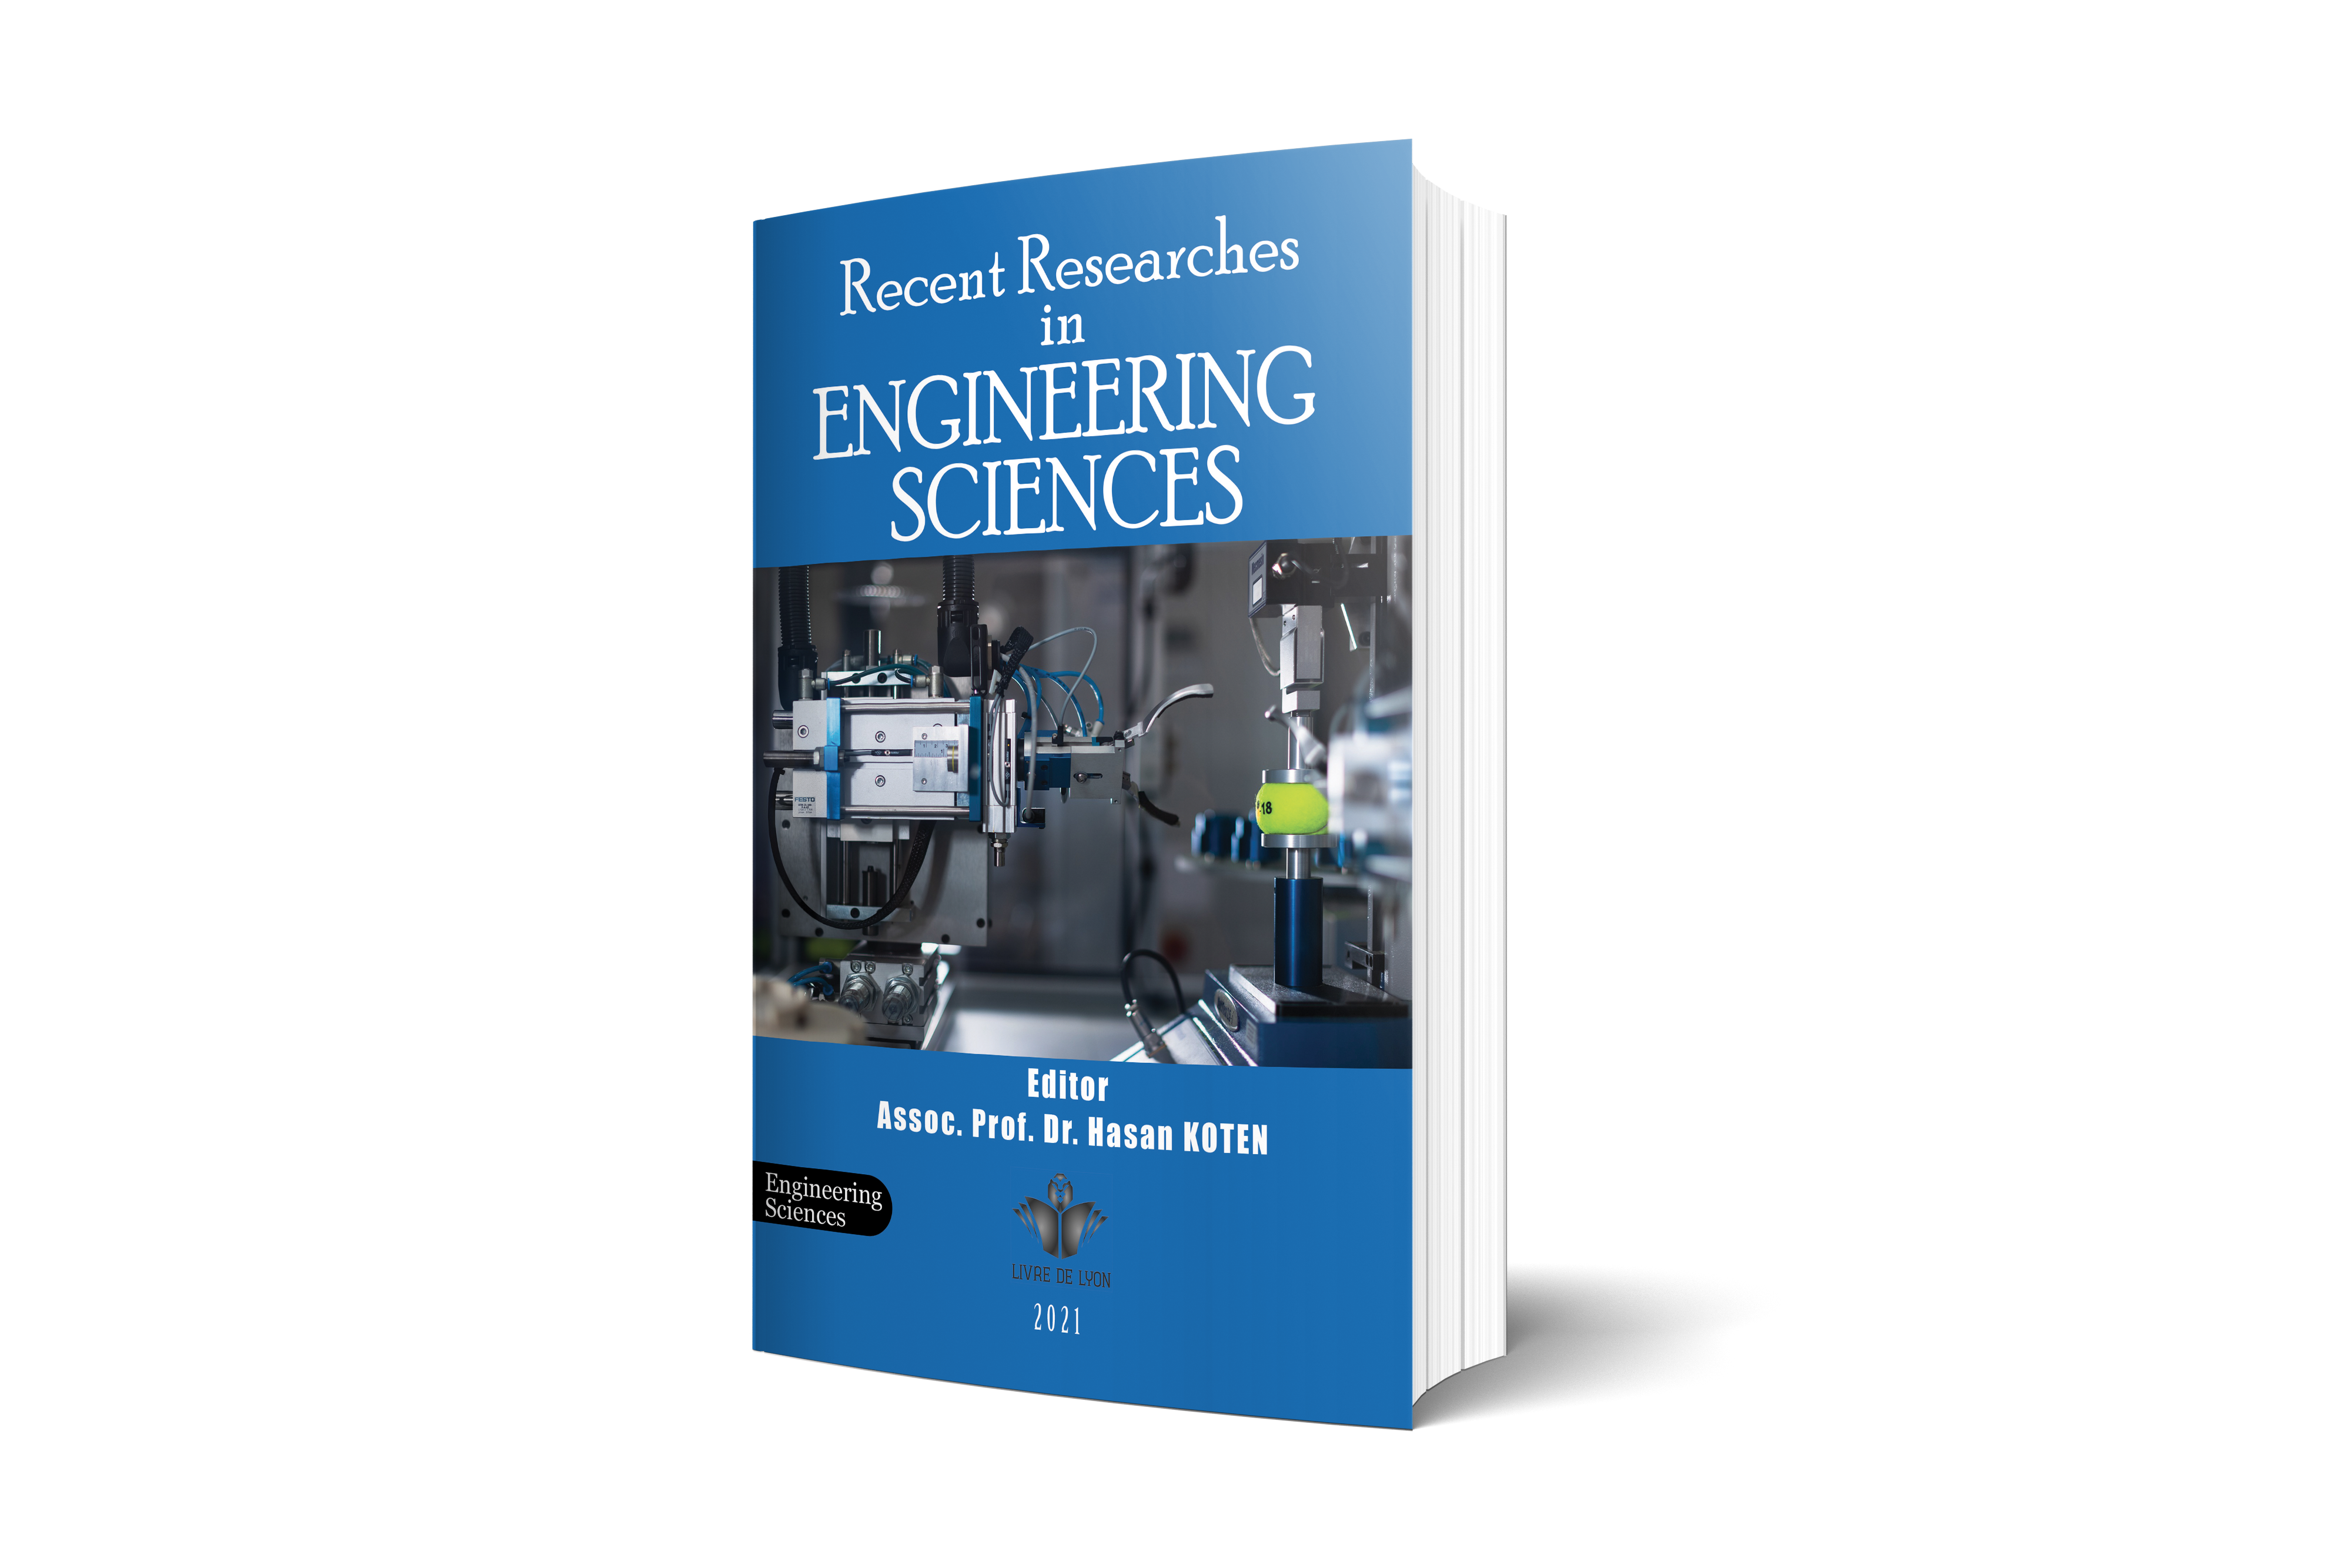 Recent Researches in Engineering Sciences